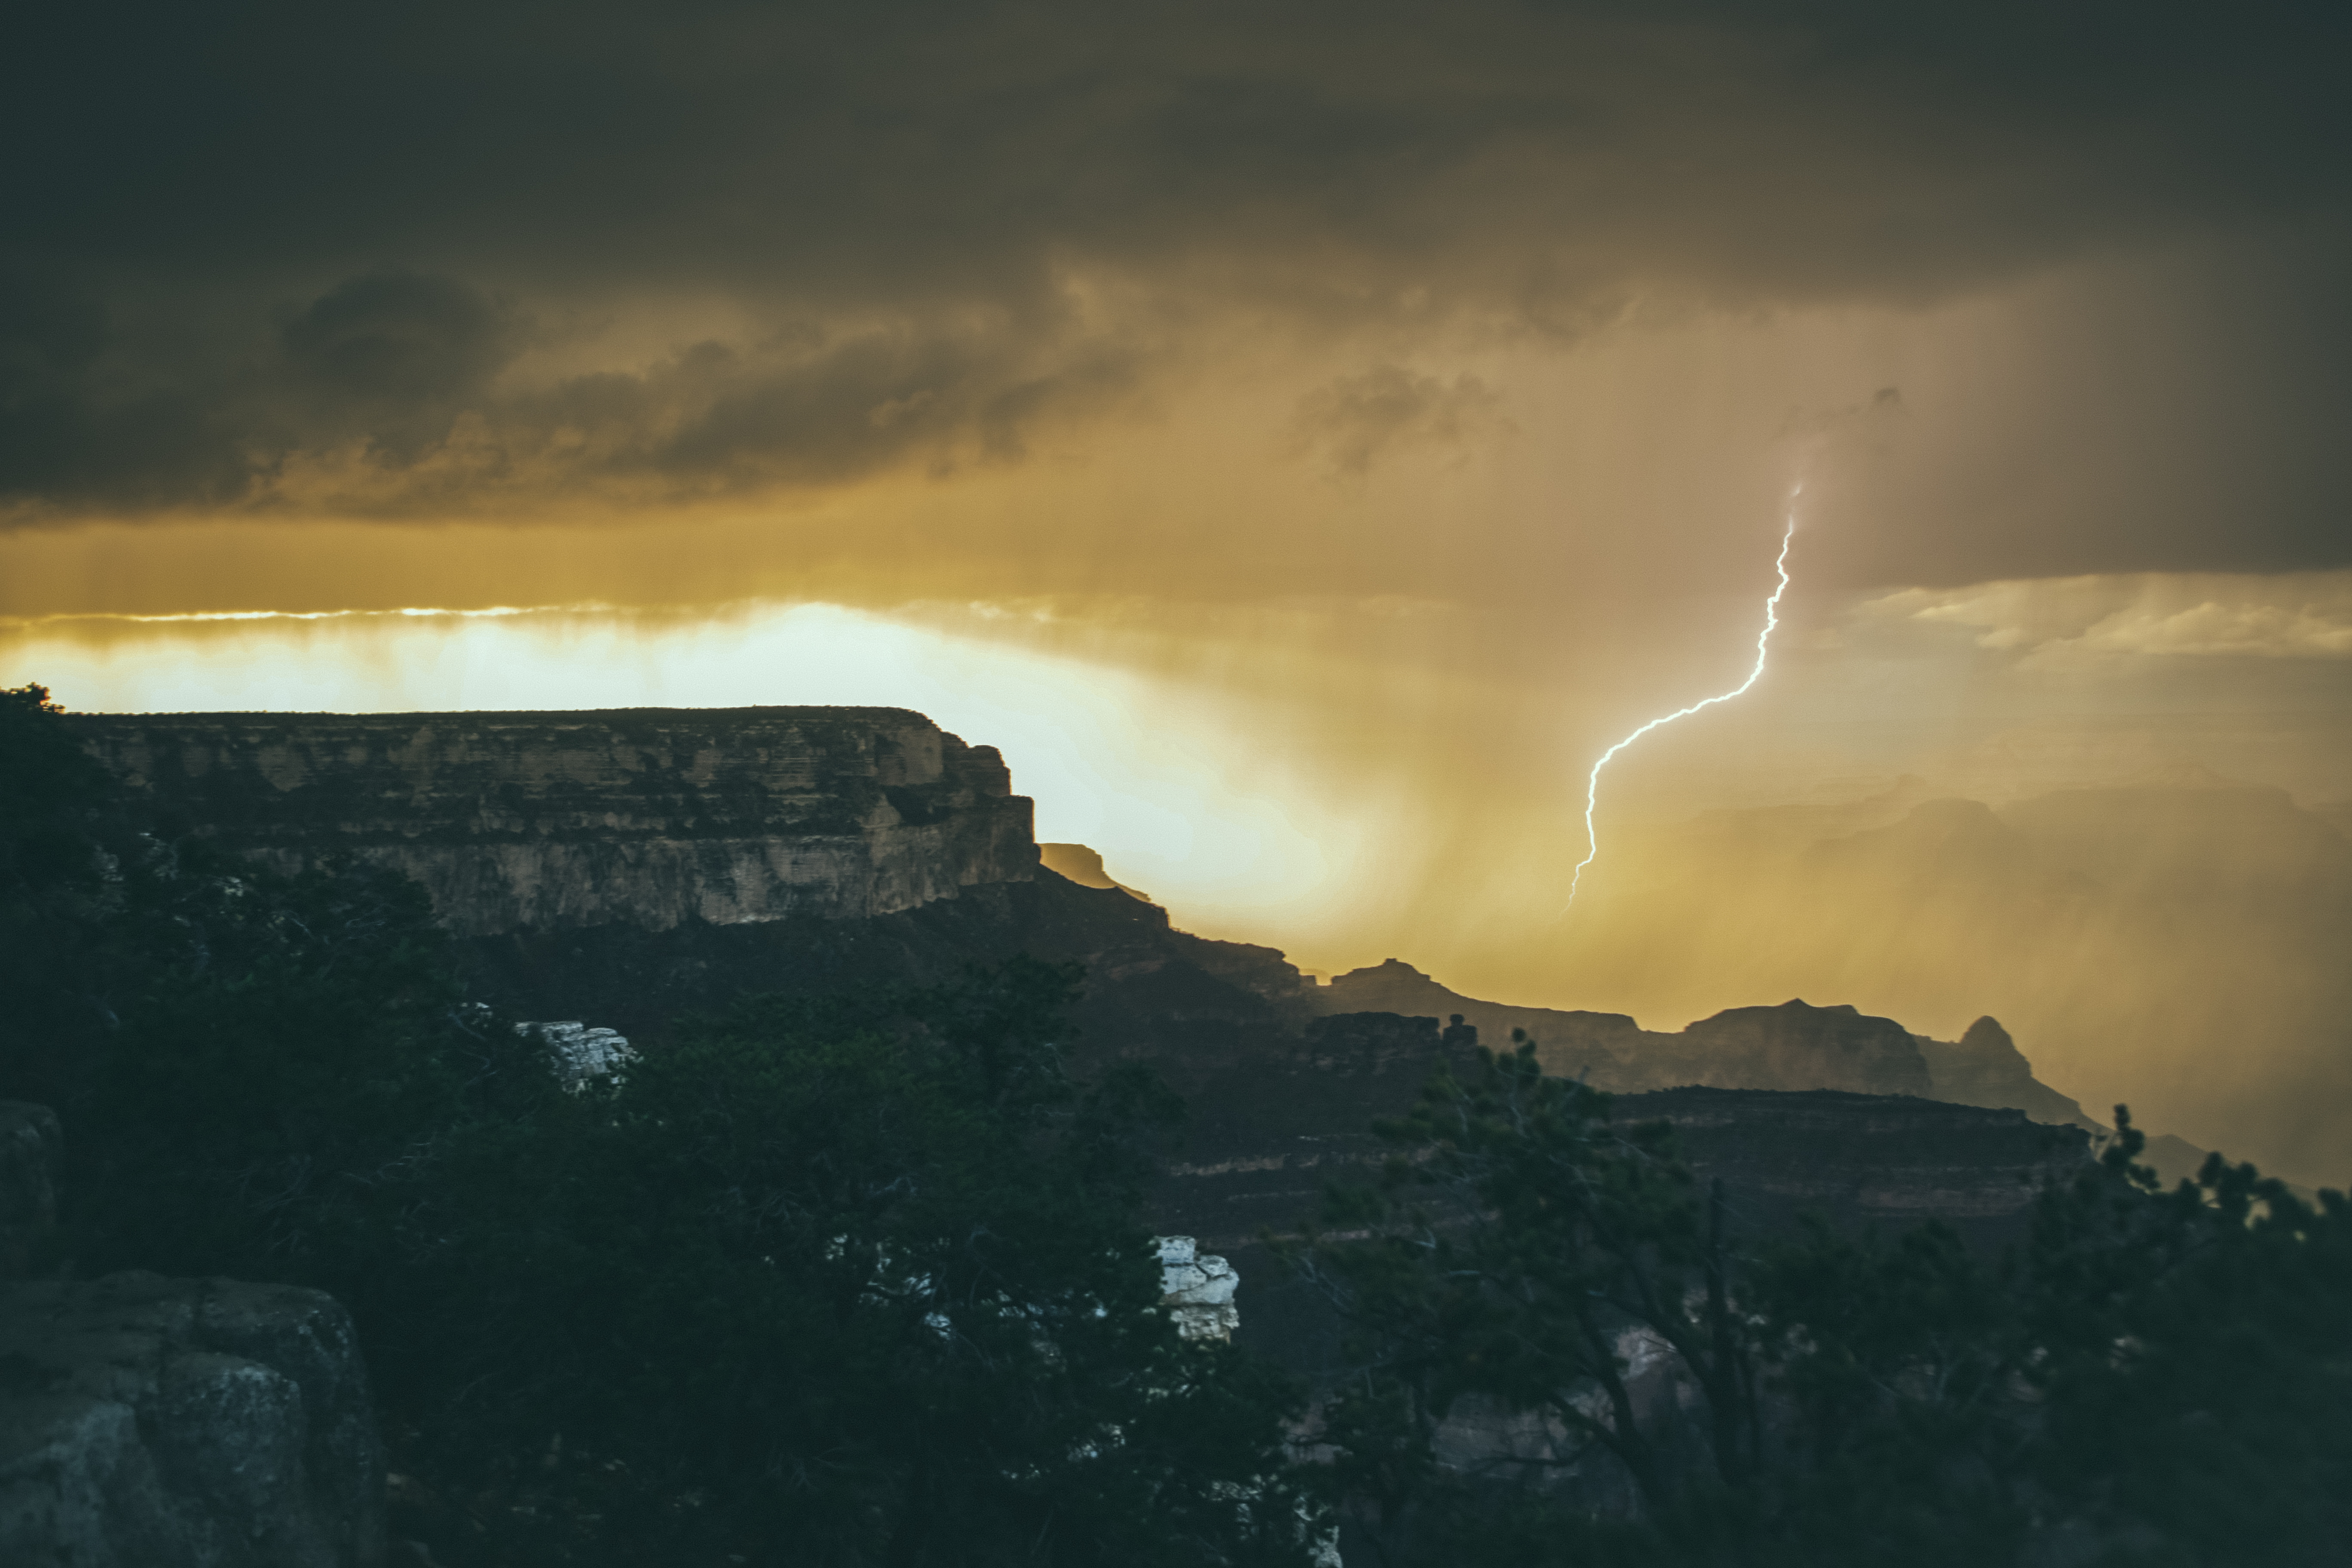 The speed in which weather changes at the Grand Canyon is amazing. Within 24 hours we saw thunder & lighting, tons of sun, hail, and then woke up to snow on the ground. I forgot how much I loved this place!